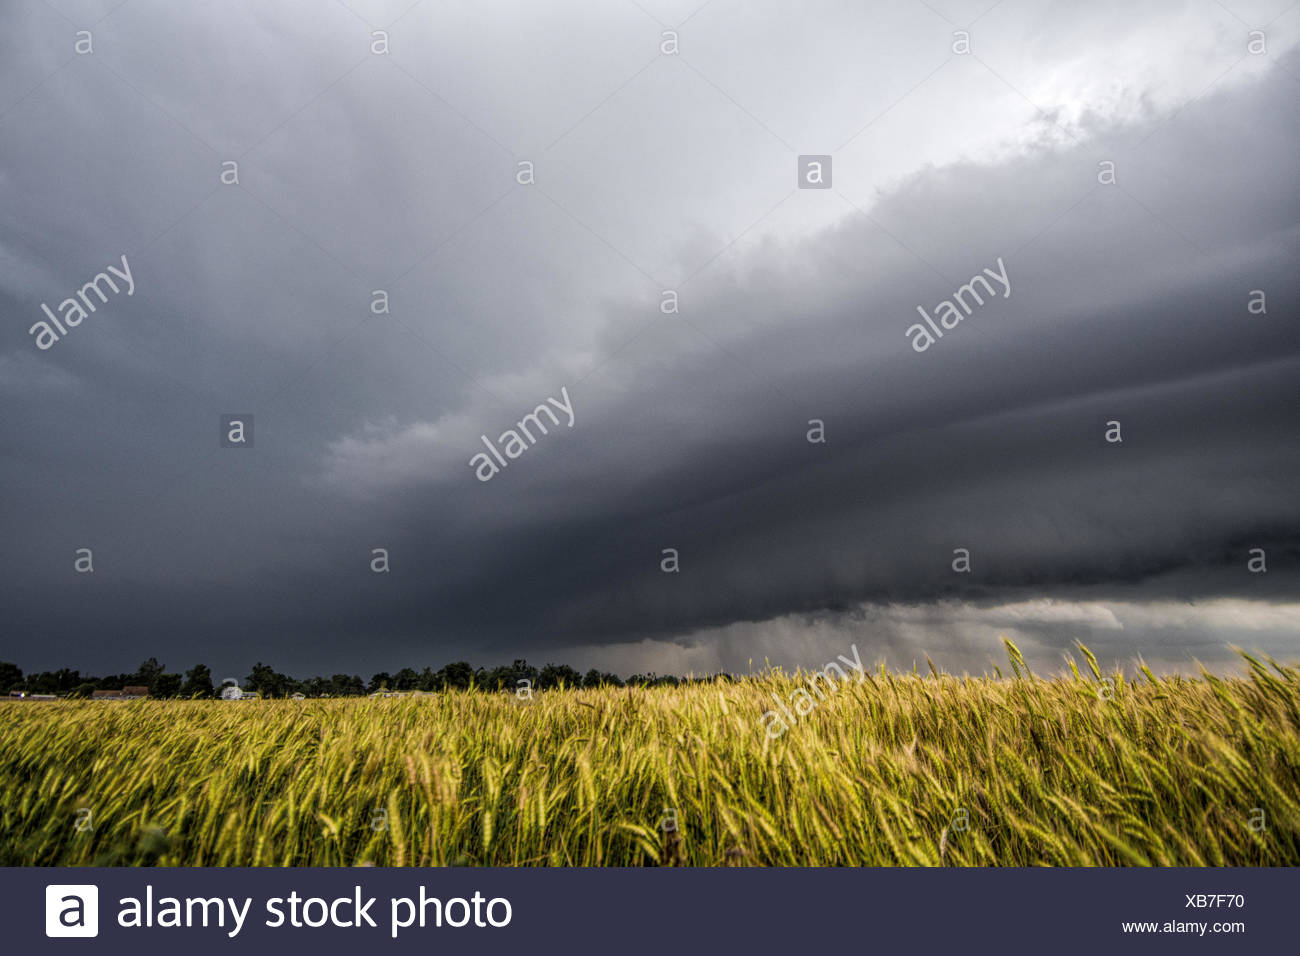 Layered supercell storm over and around wheat fields, Fairview, Oklahoma, USA Stock Photo